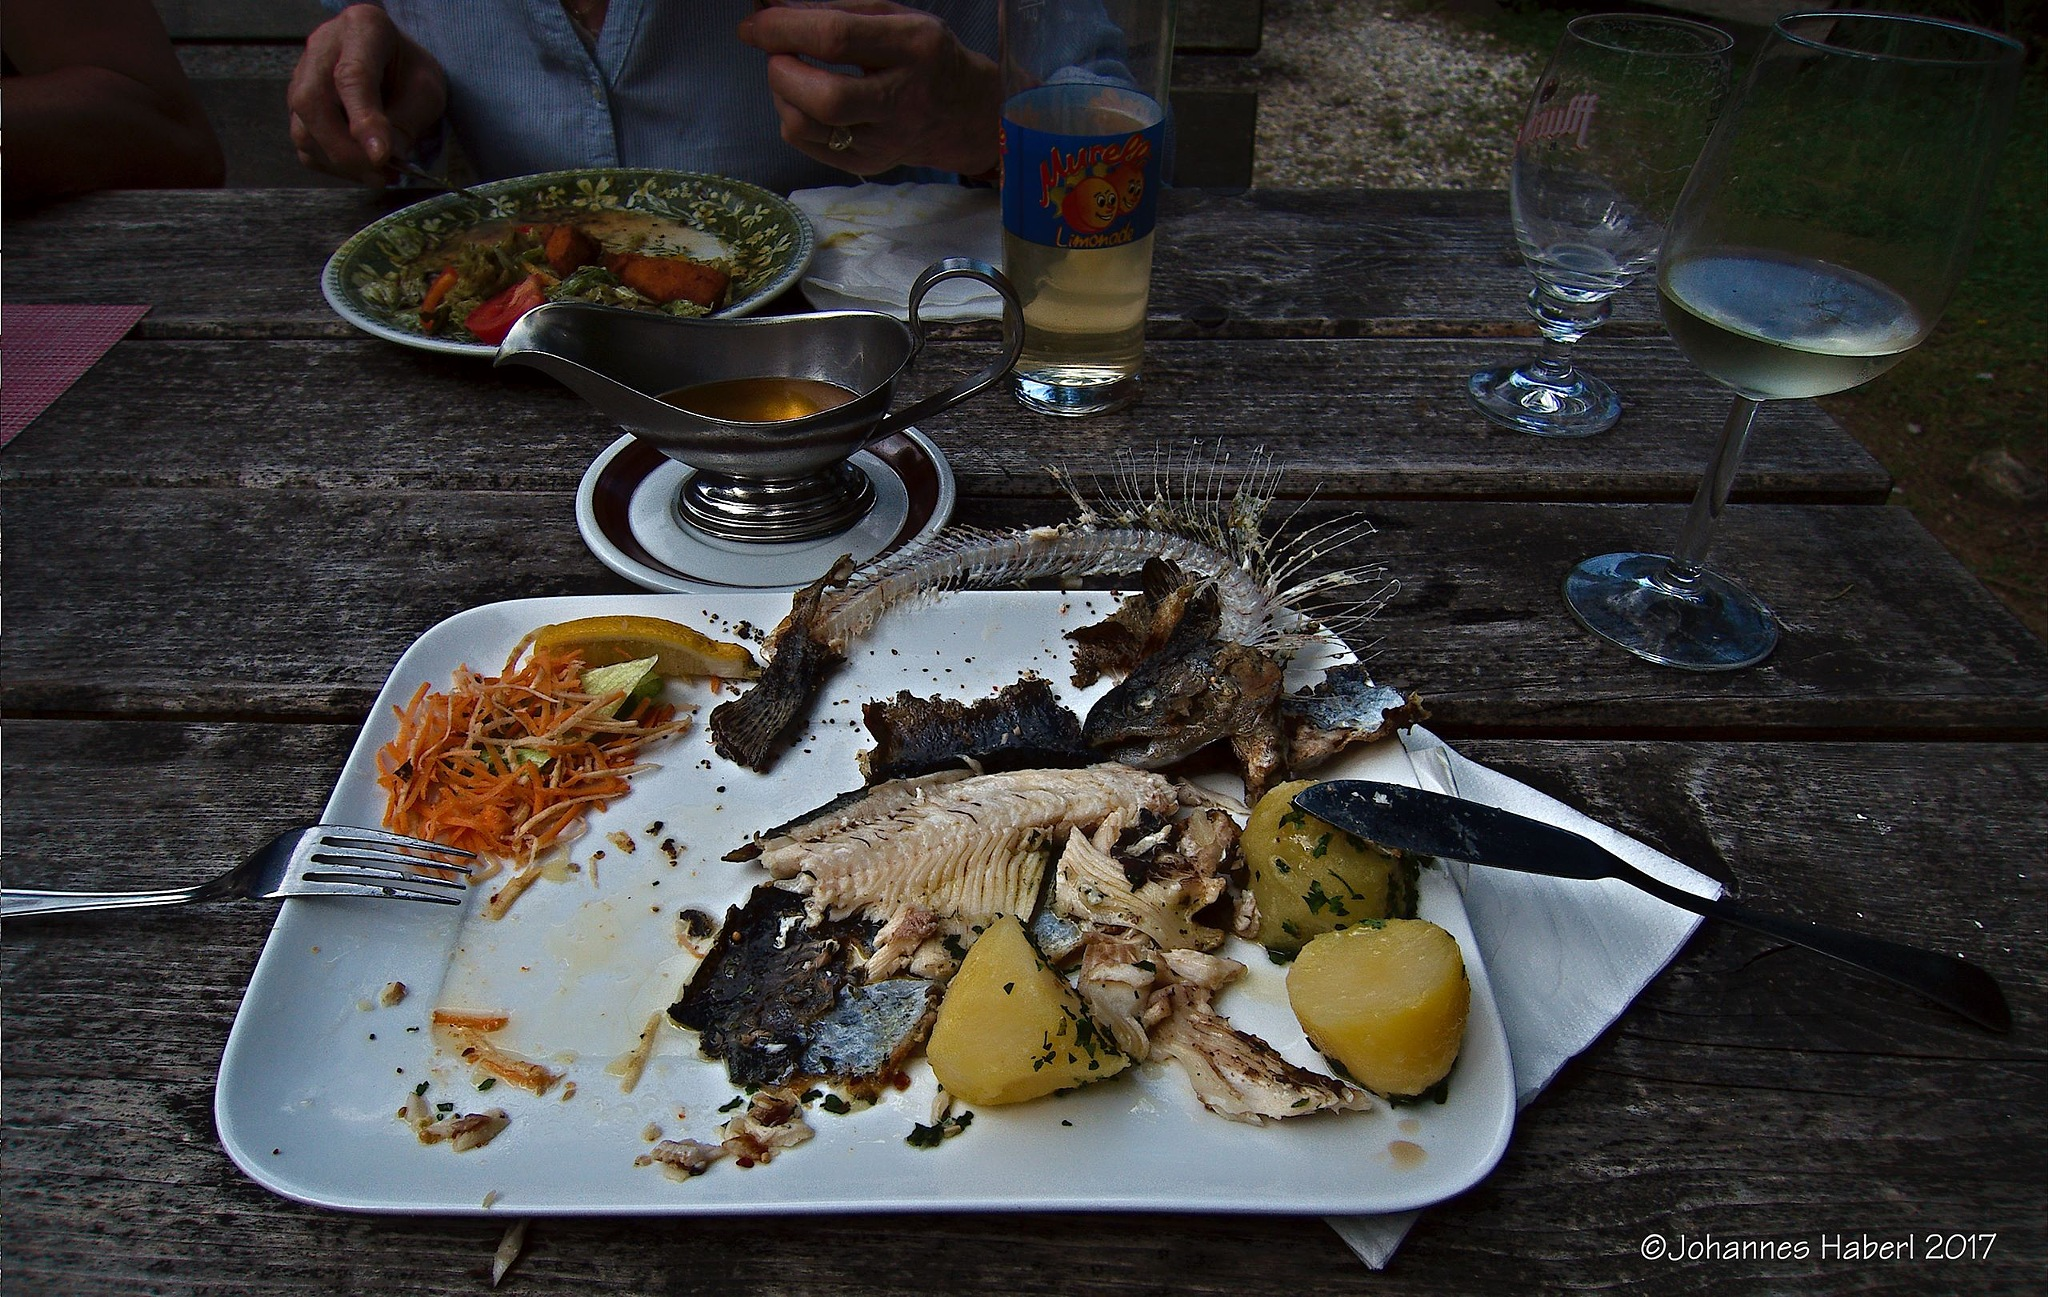 trout on the table / with melted butter and parsley potatoes  by Johannes Haberl